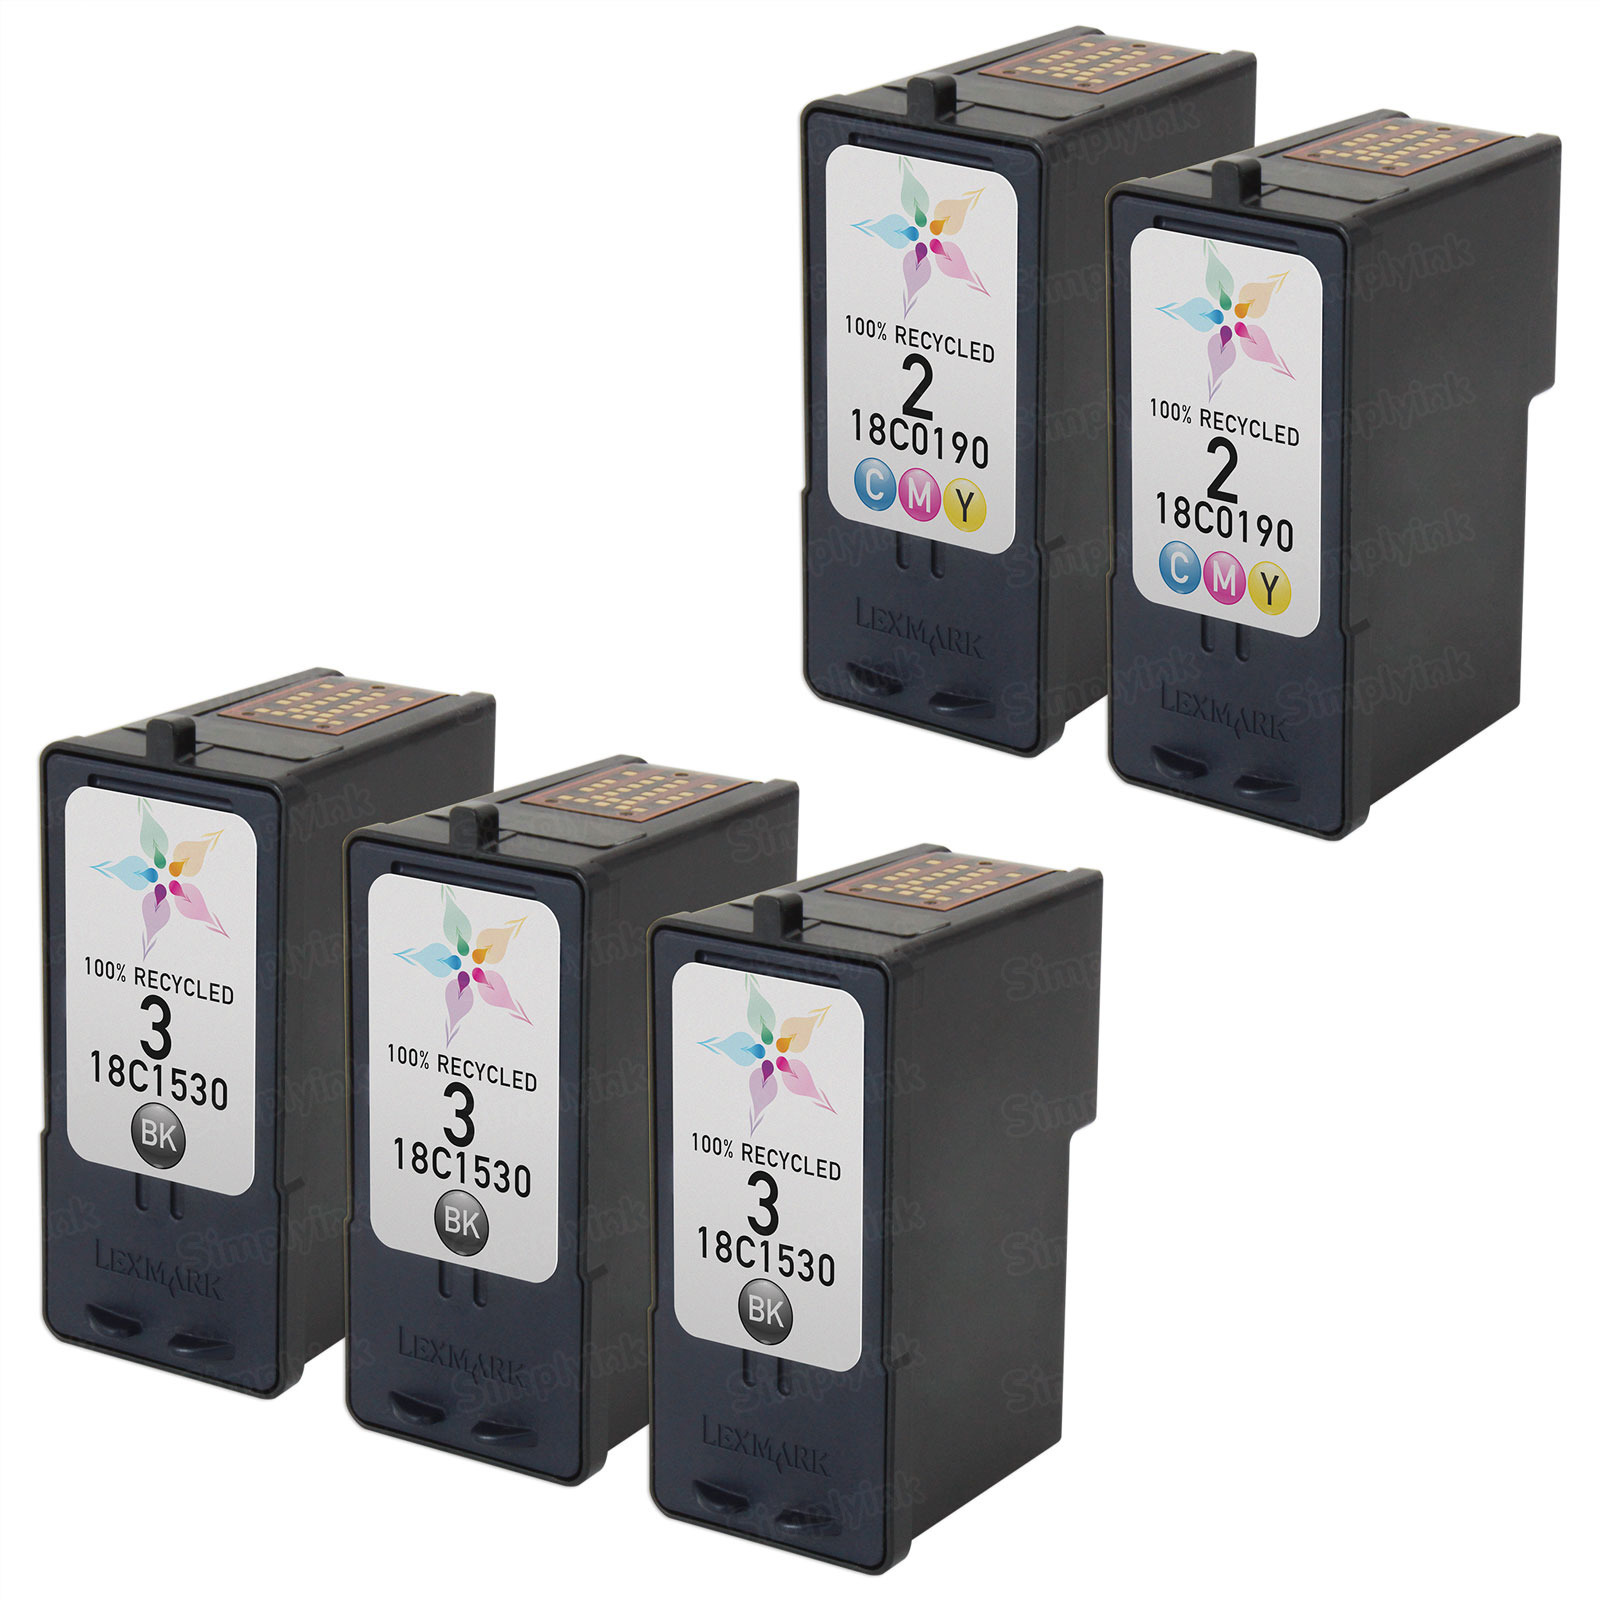 Inkjet Supplies for Lexmark Printers - Remanufactured Bulk Set of 5 Ink Cartridges 3 Black Lexmark #3 (18C1530) and 2 Color Lexmark #2 (18C0190)